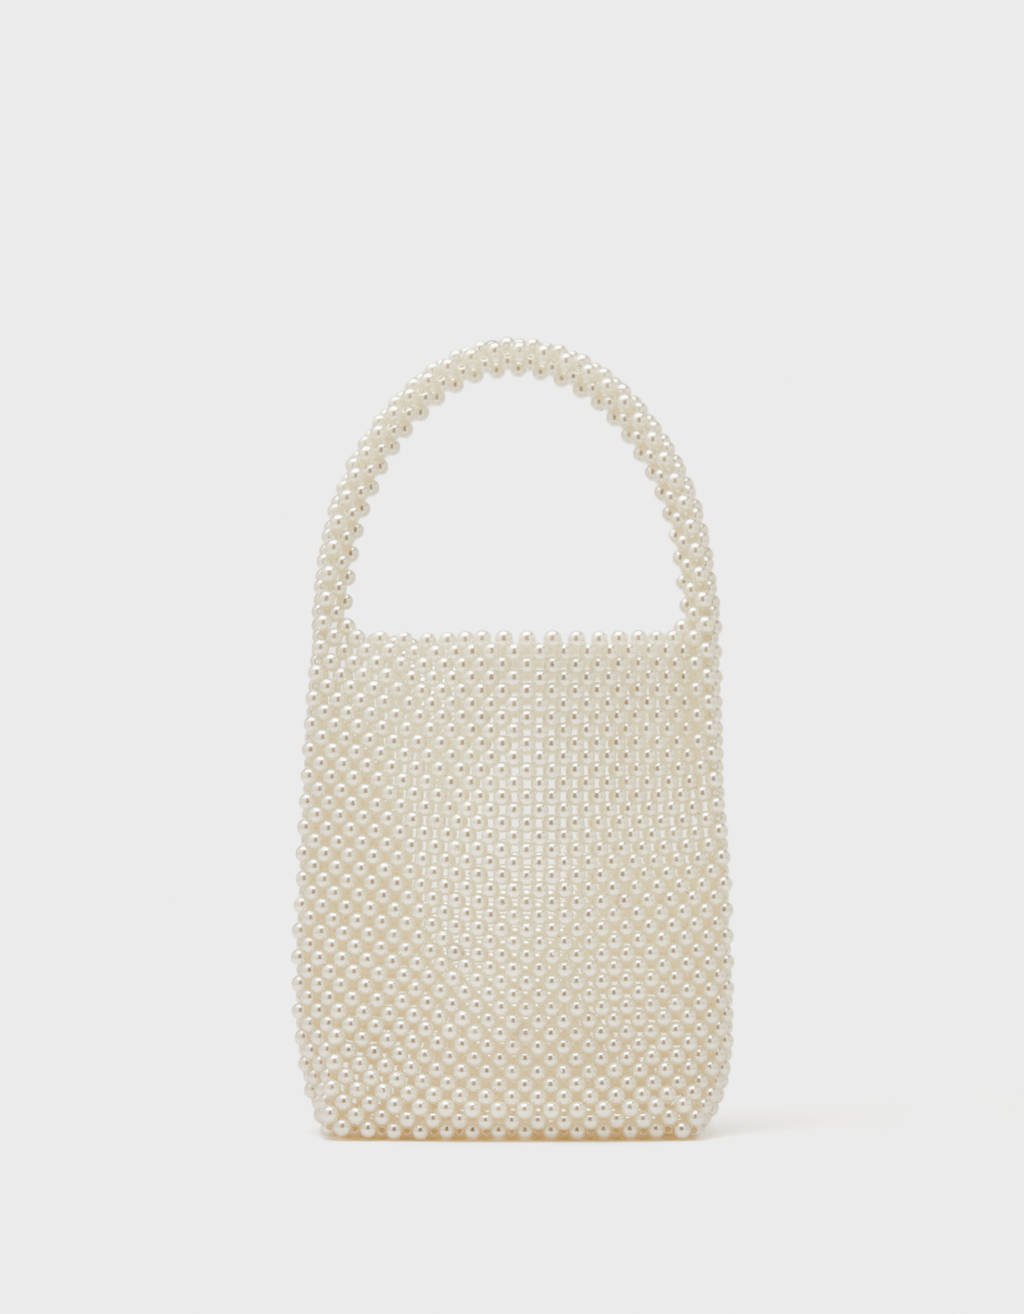 Handbag with faux pearls